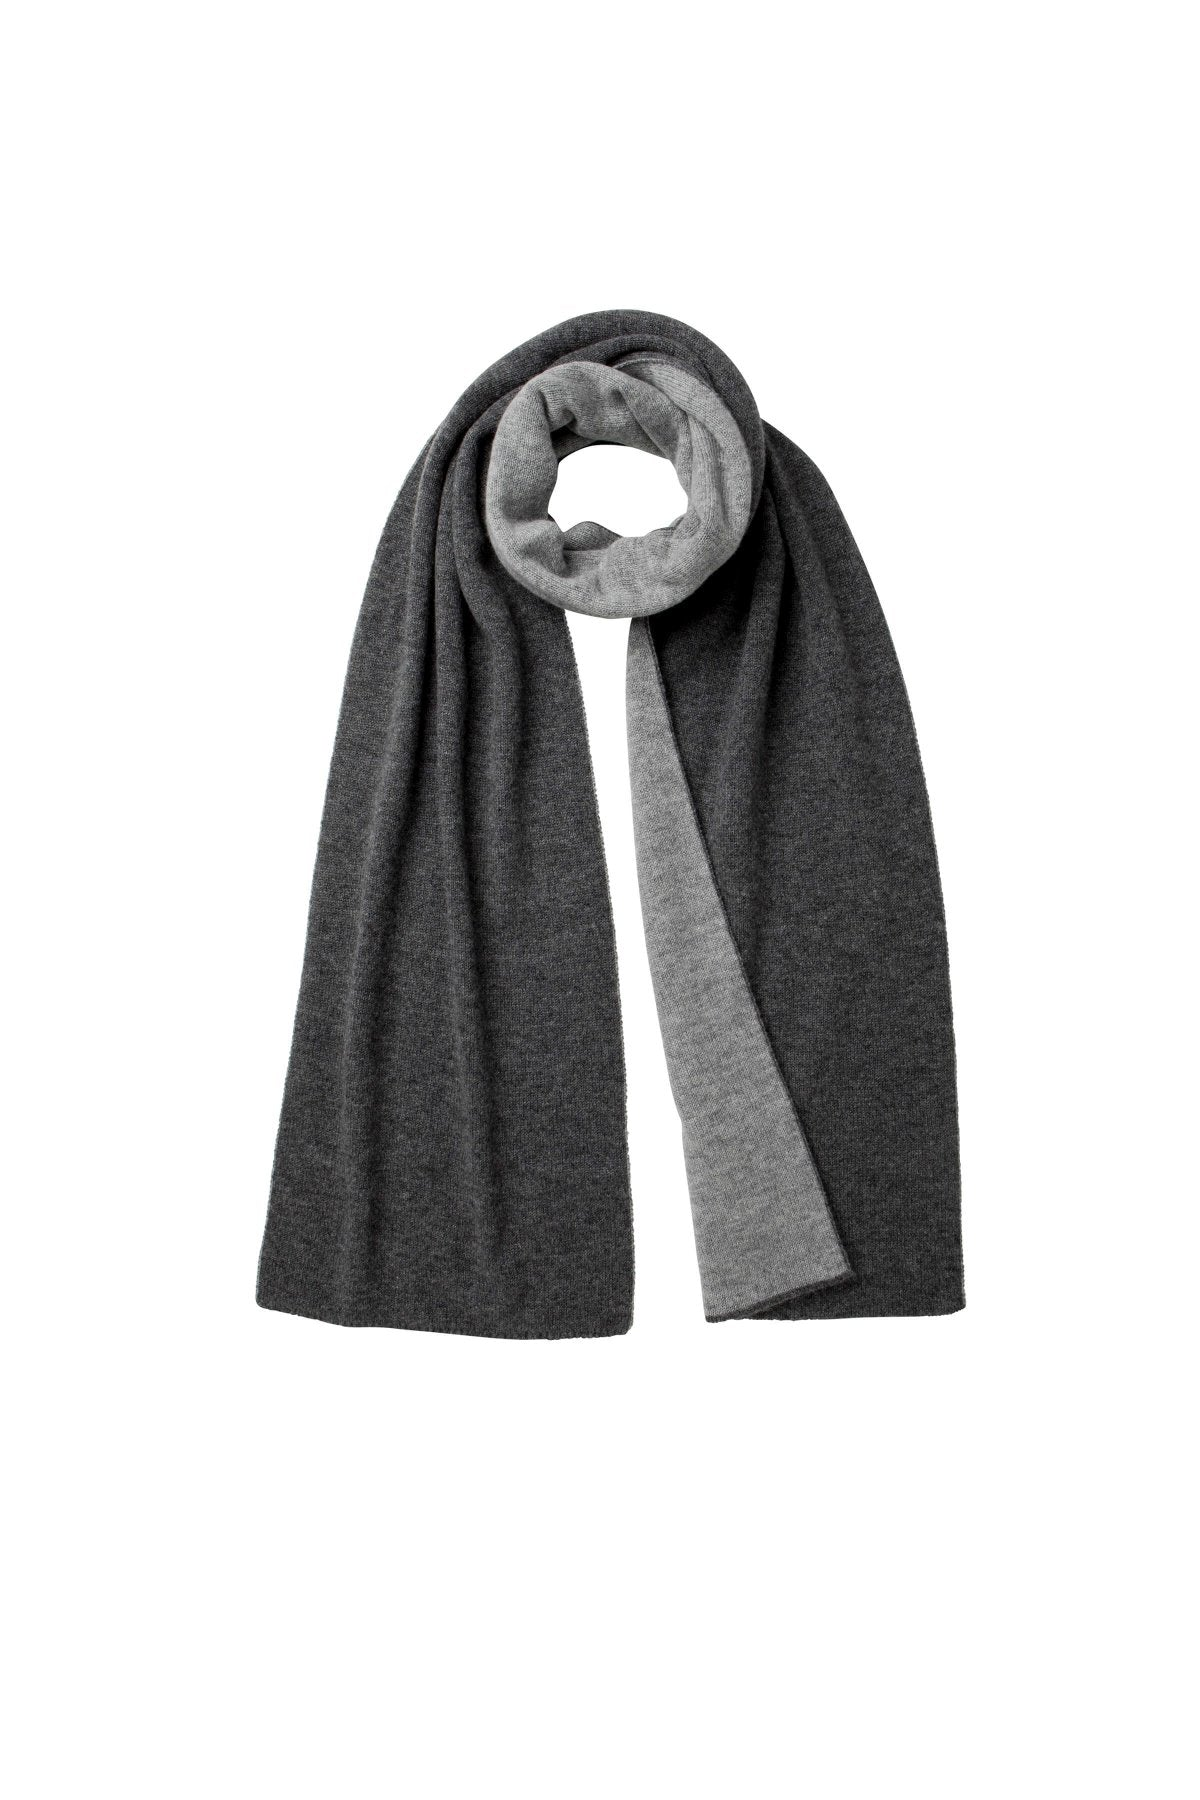 Charcoal & Dove Reversible Cashmere Scarf